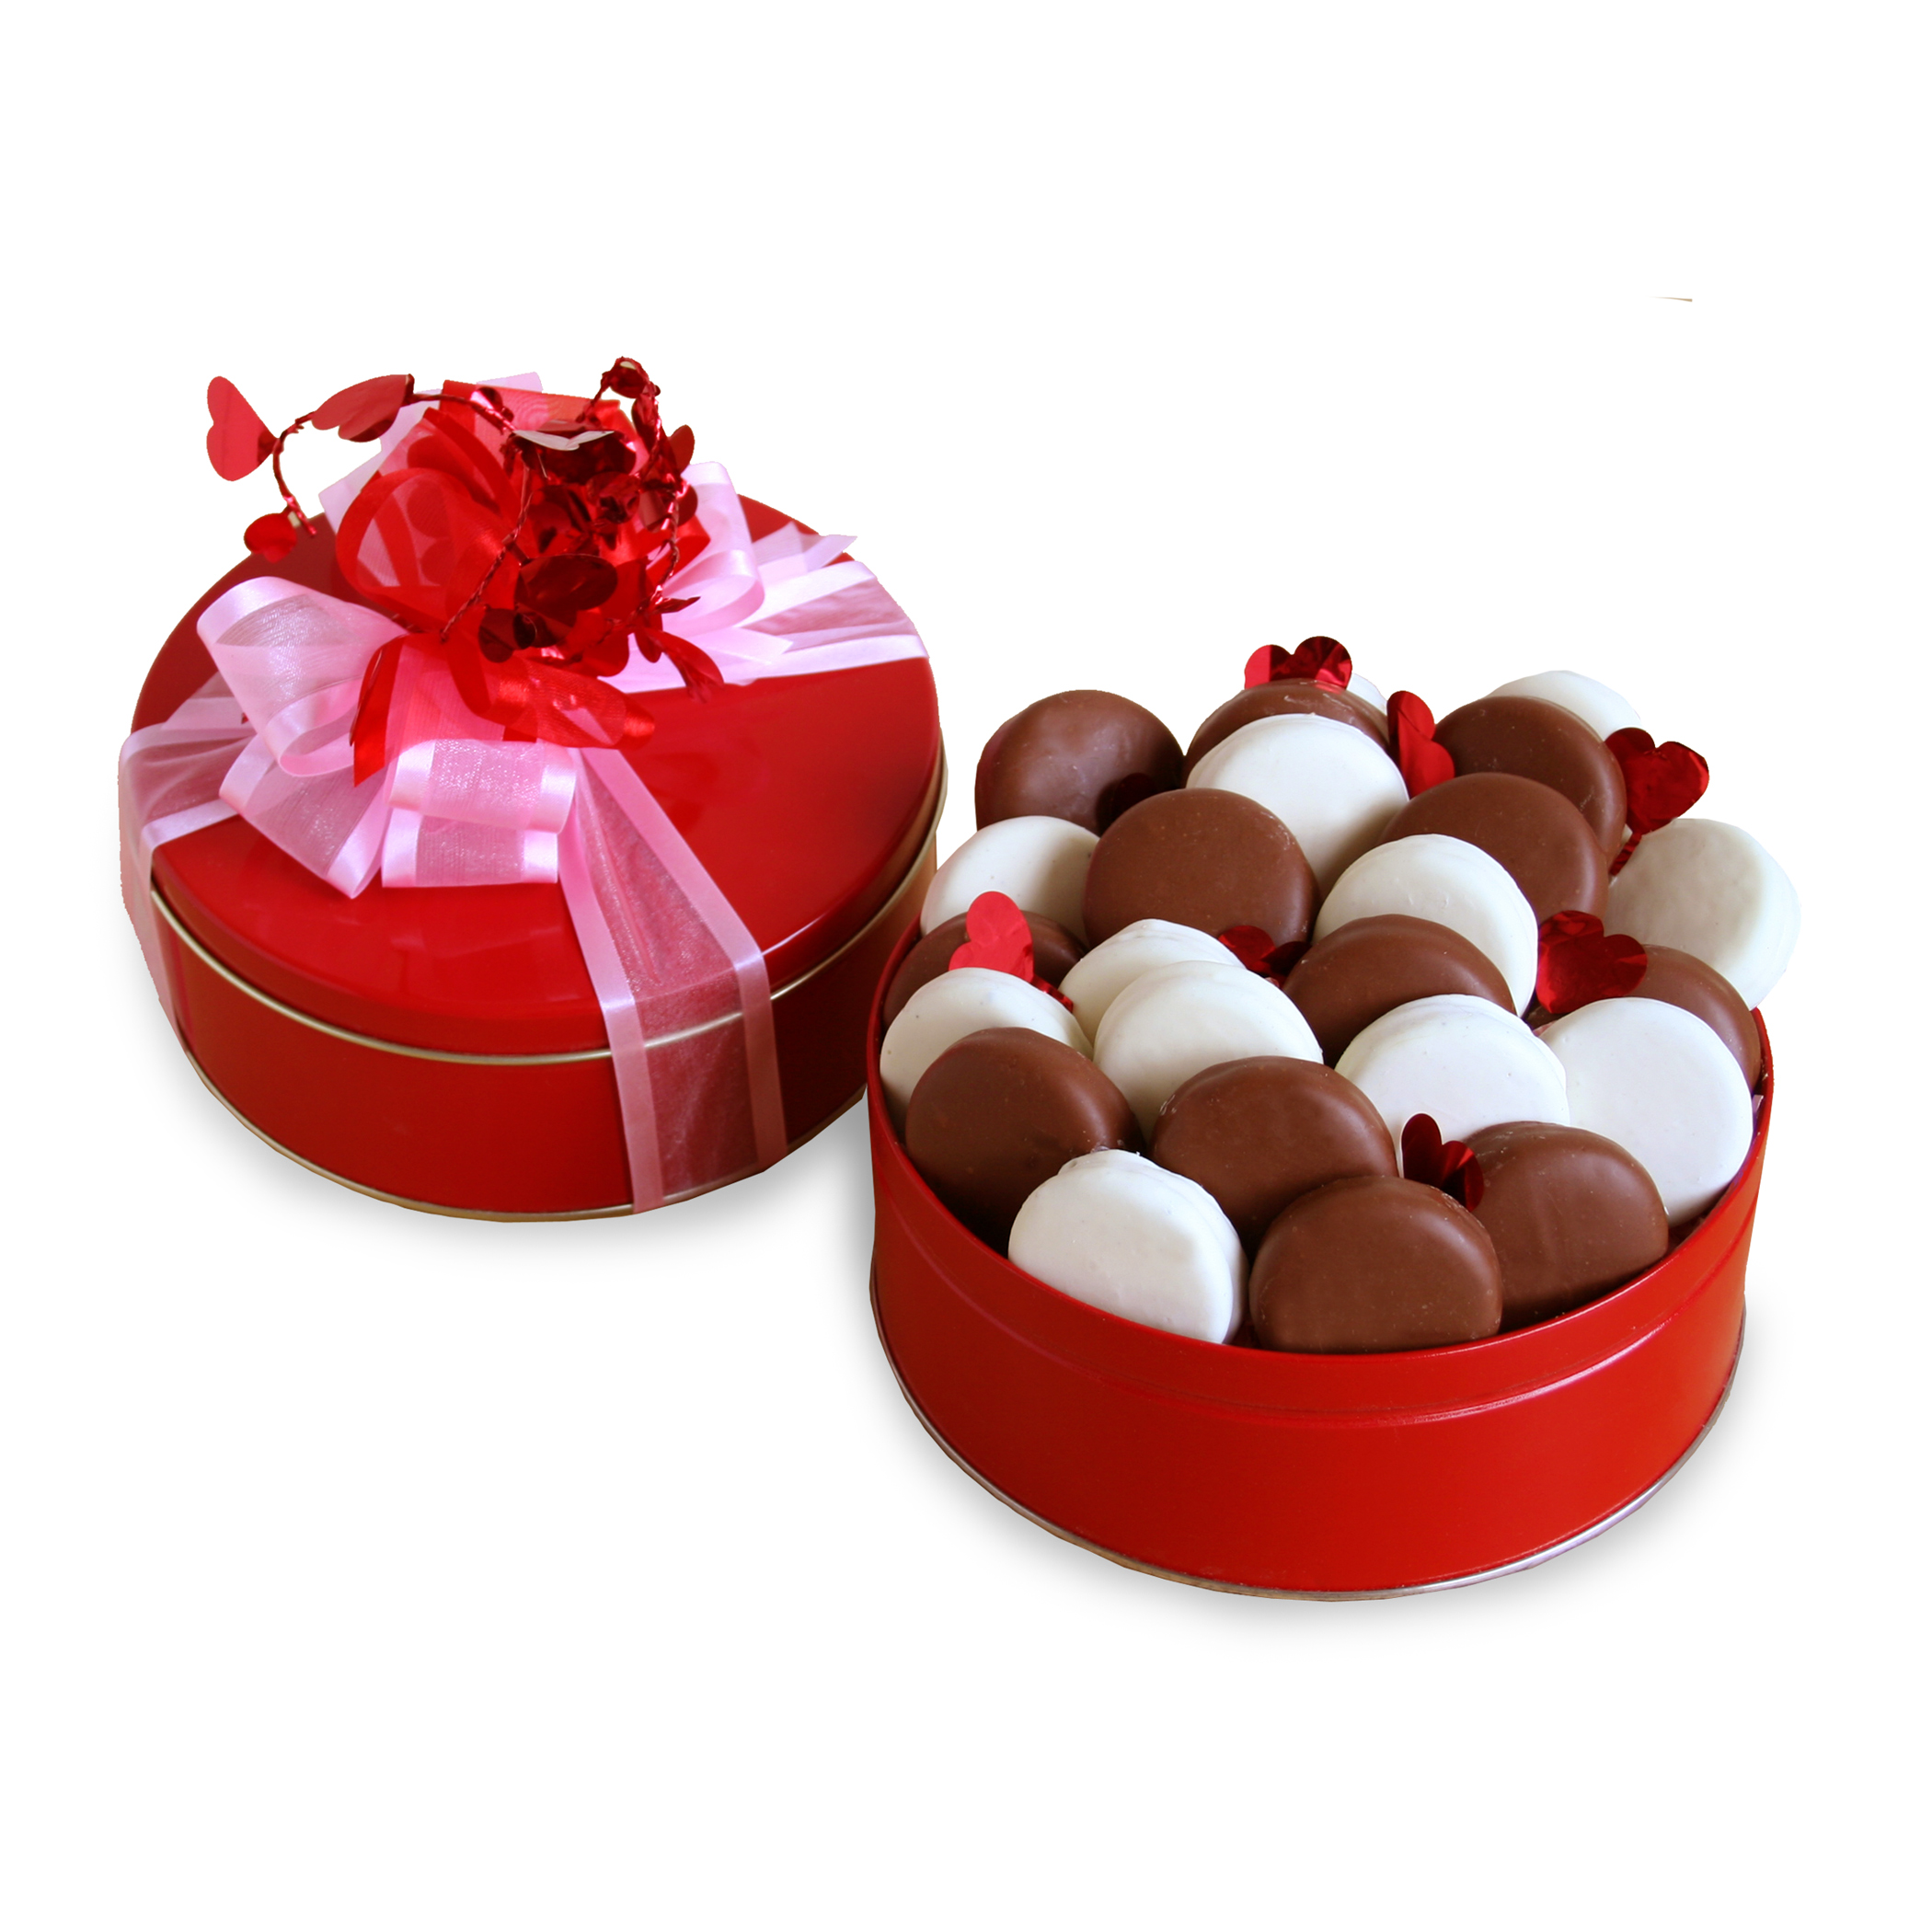 California Delicious Chocolate And Delicious Valentine Gift Tin